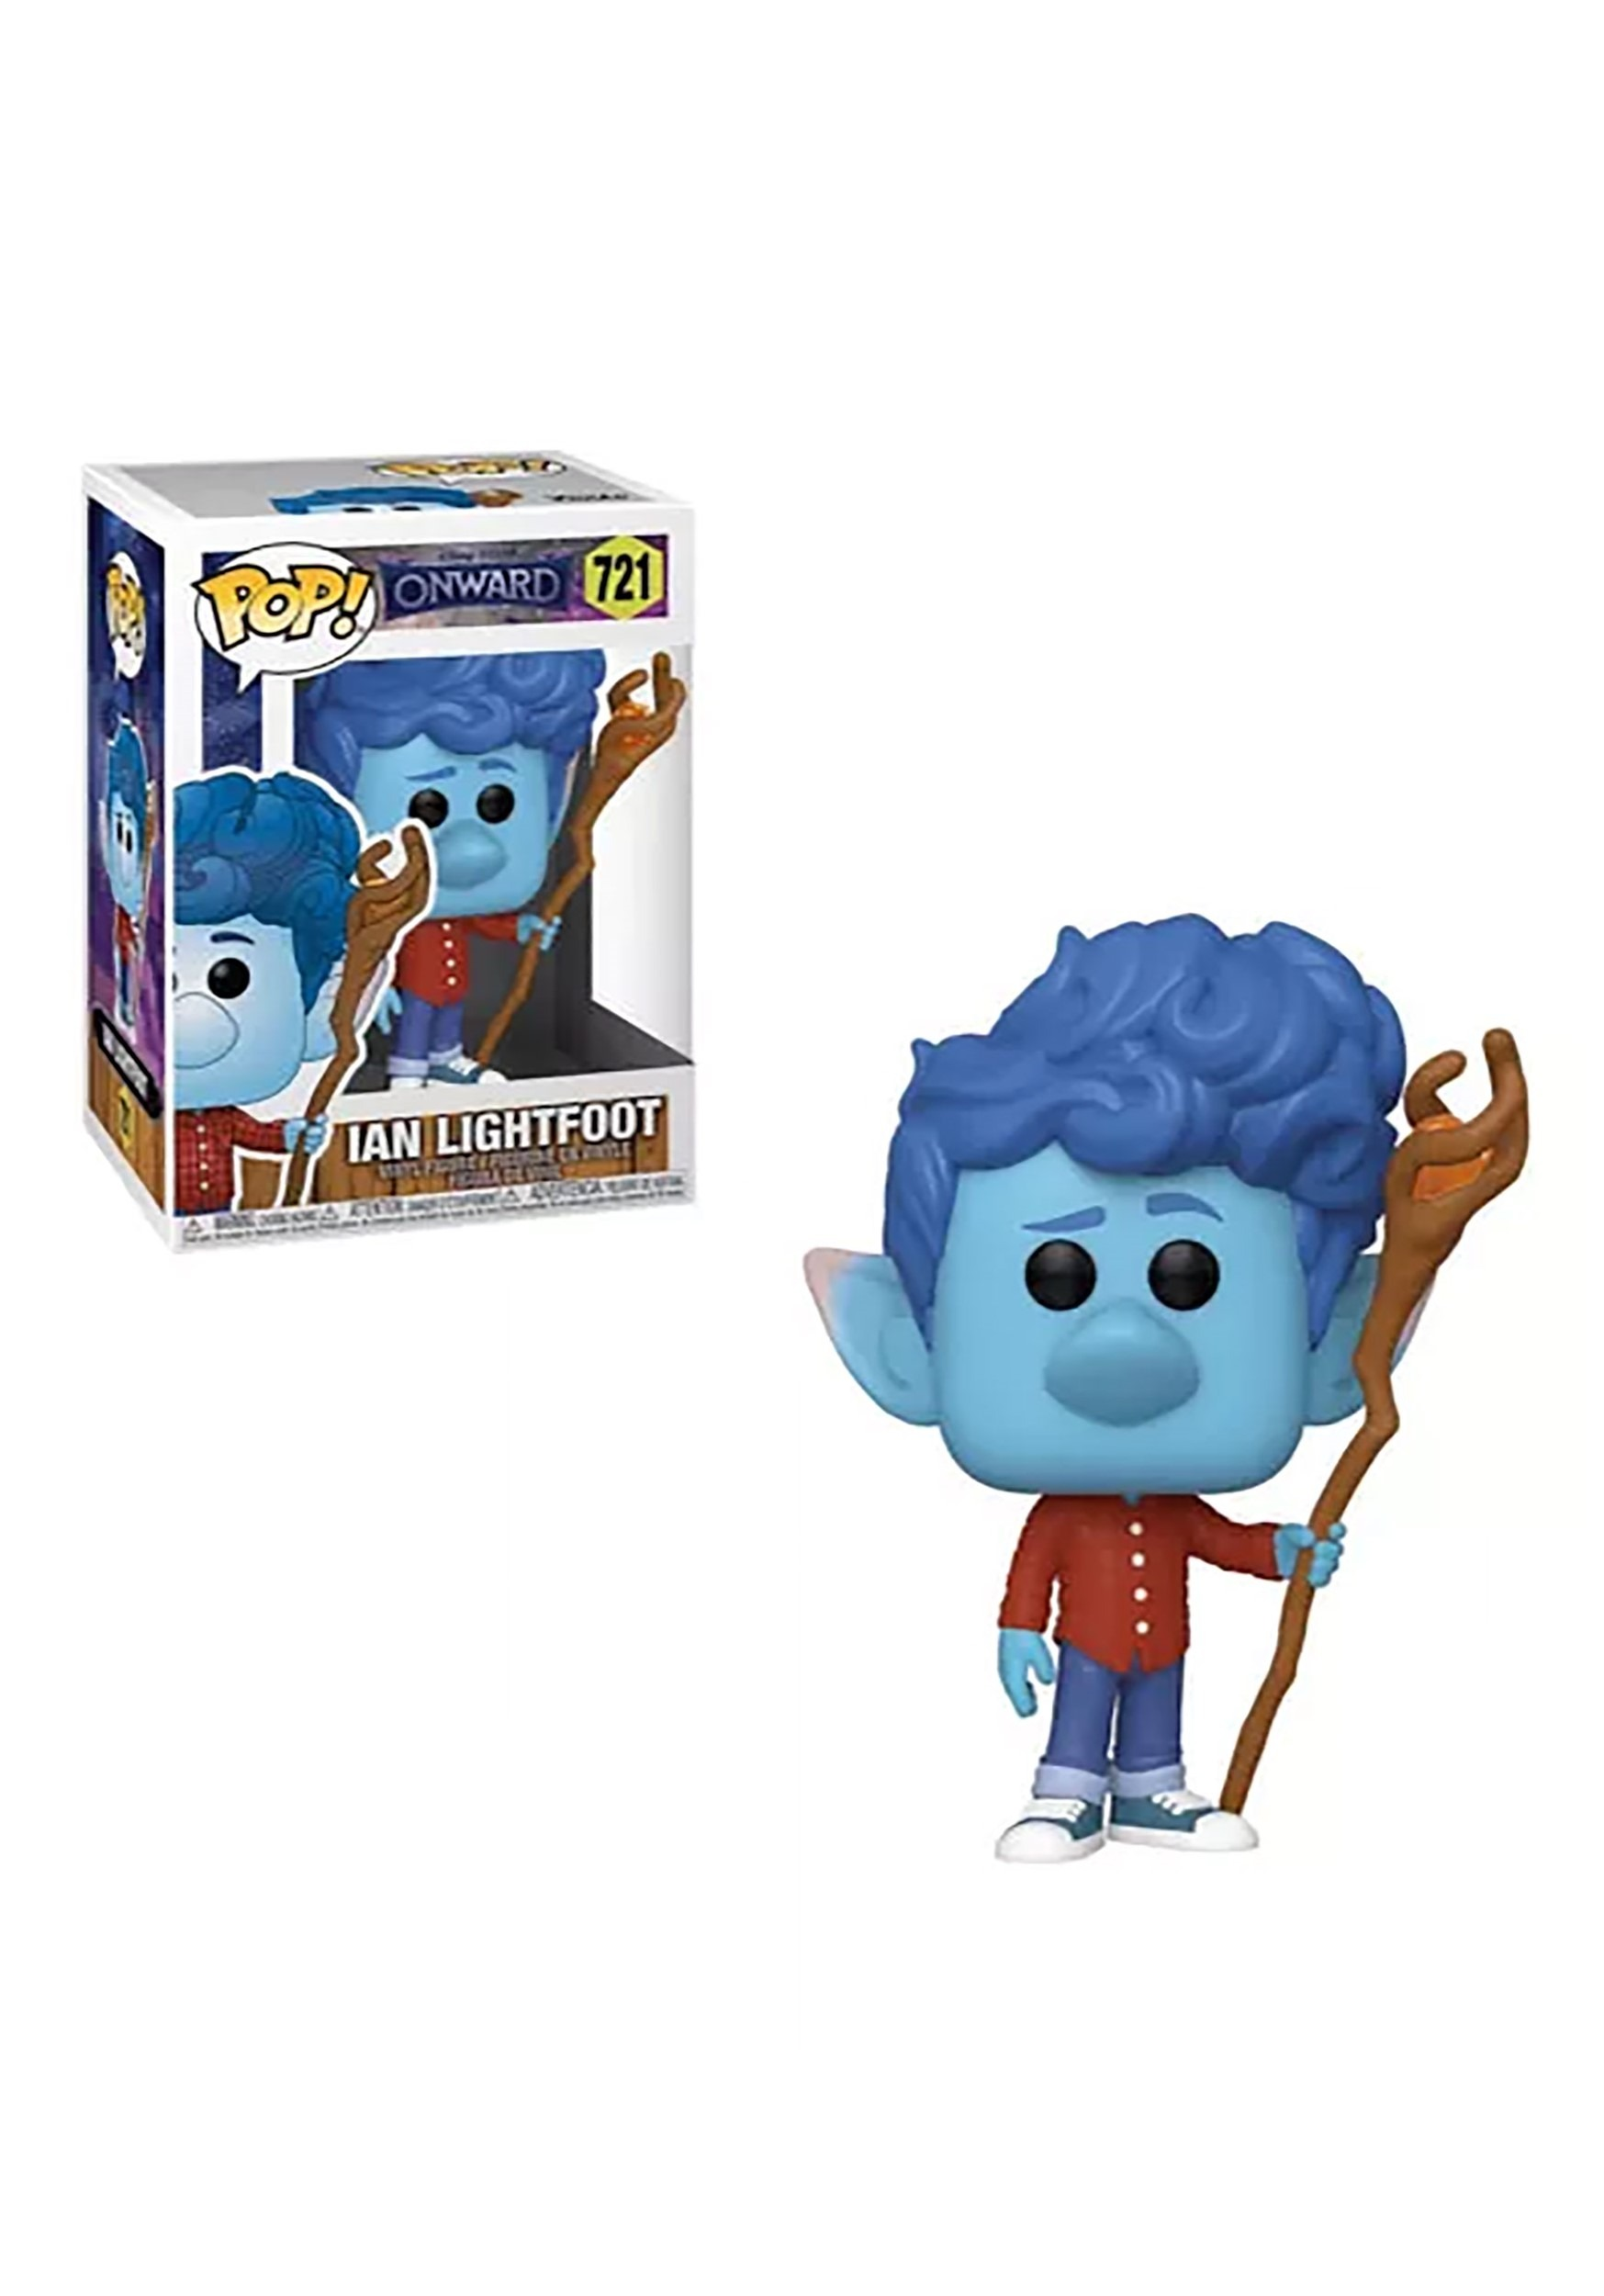 Onward - Ian Lightfoot Vinyl Figure POP! Disney